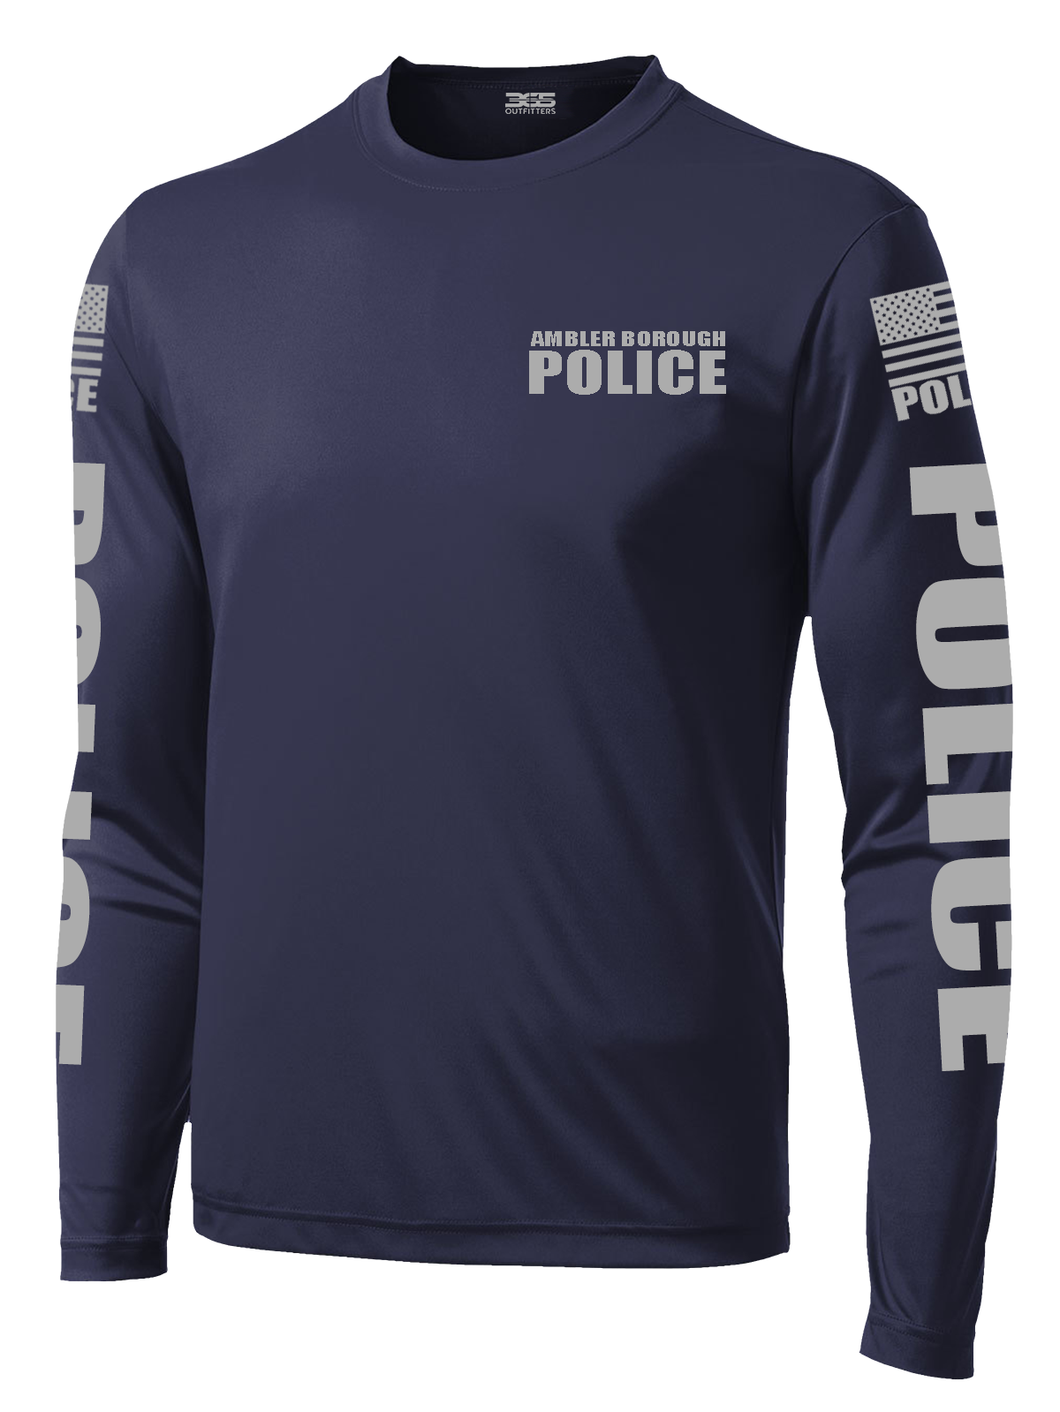 Ambler Borough Police Officer Long Sleeve Performance Shirt  | Navy and Grey - №365 Outfitters